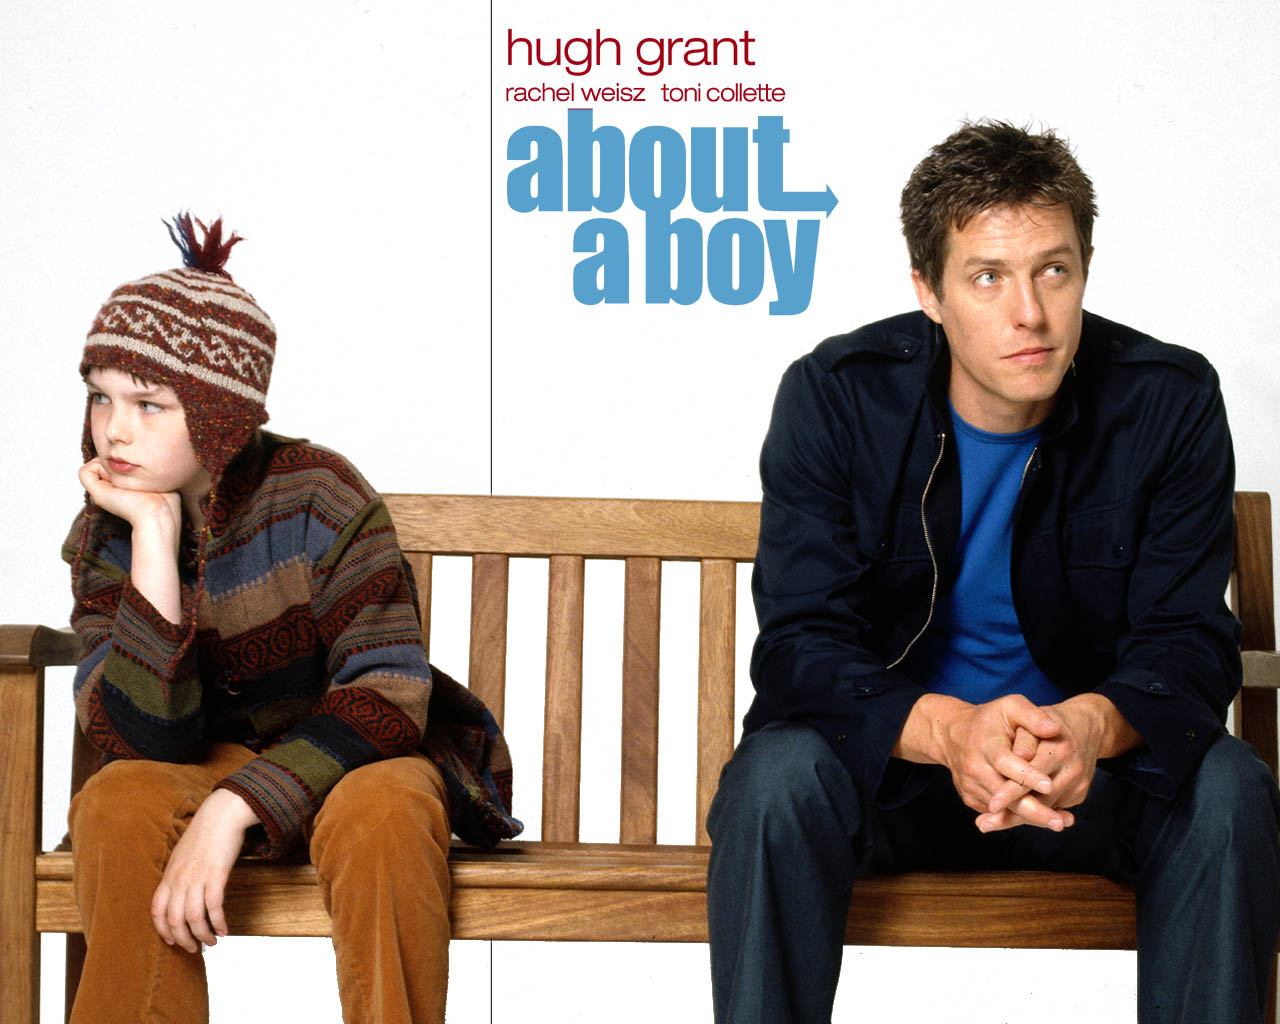 About A Boy Images About A Boy Hd Wallpaper And Background Photos